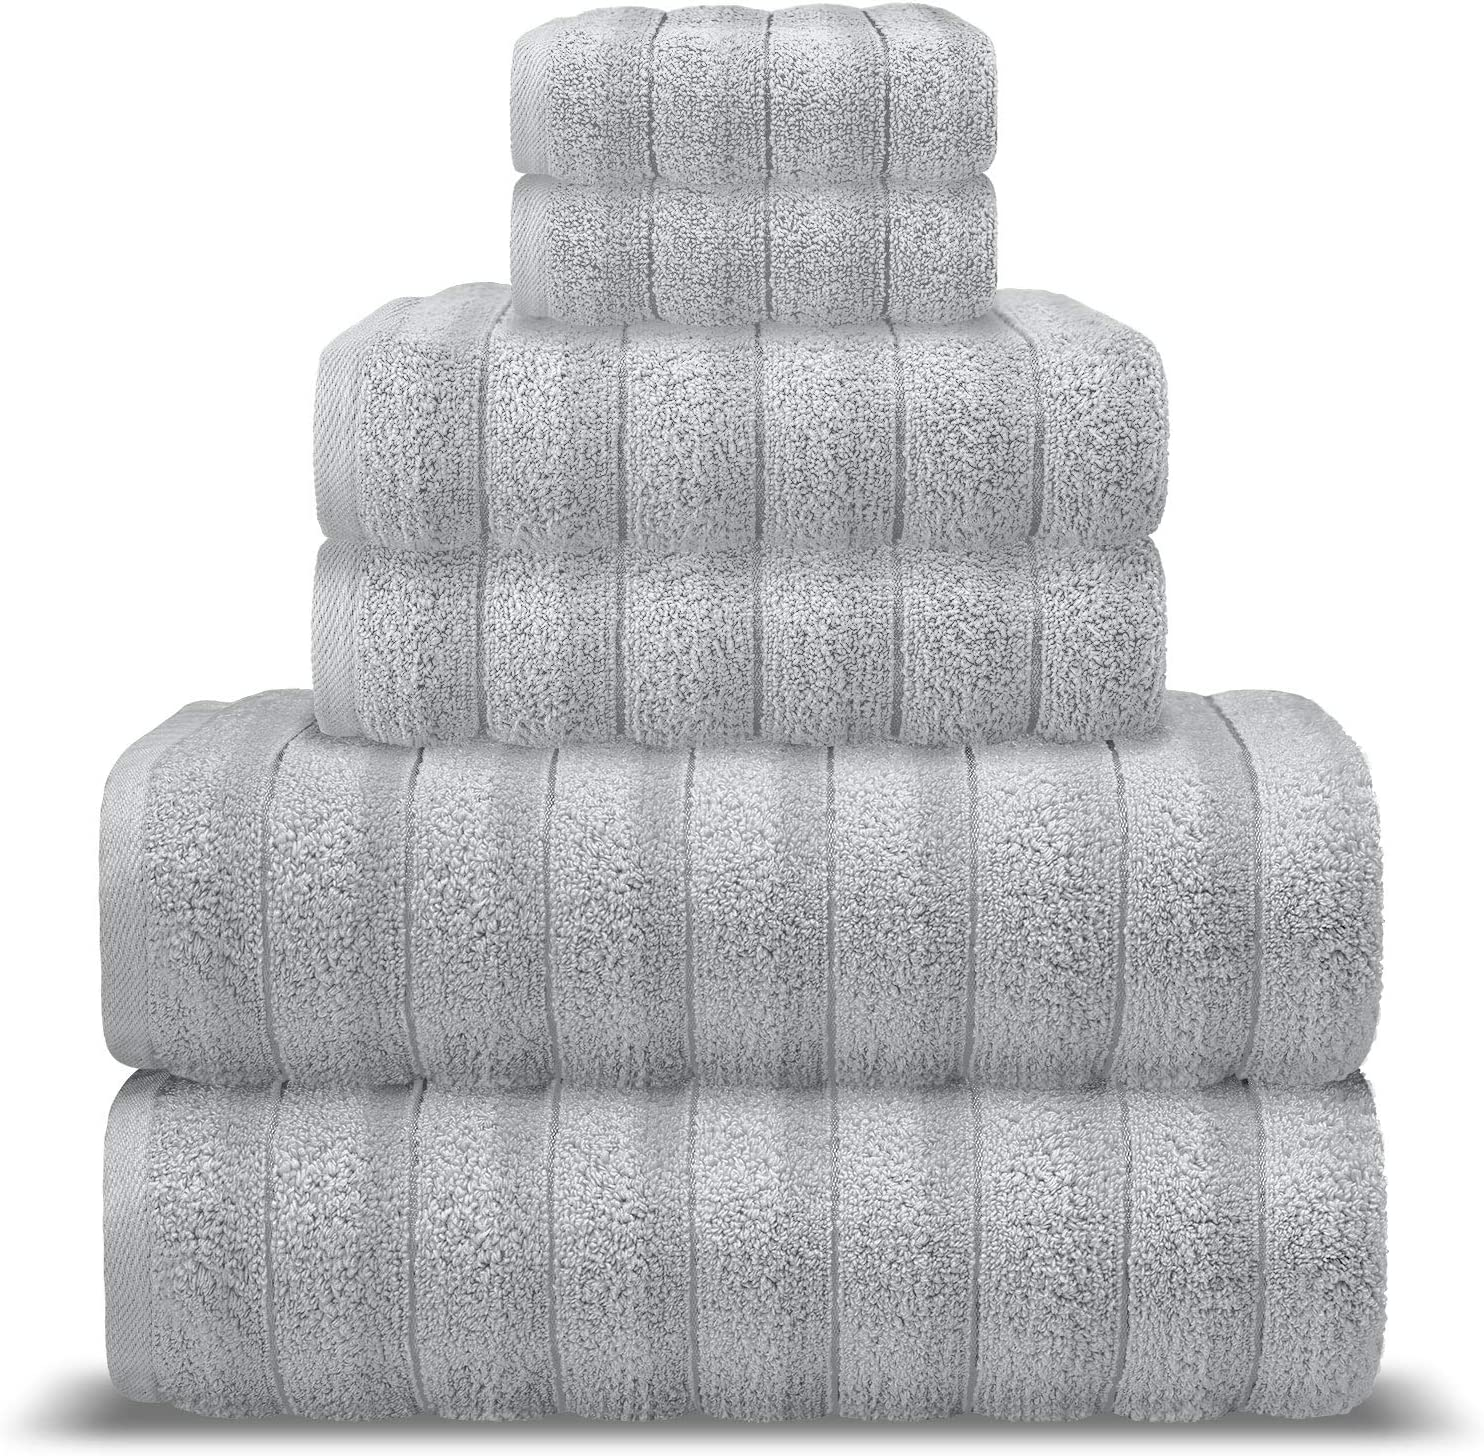 AROW9 Luxury Bath Towel Set 6 Piece 100% Turkish Cotton for Home Guest Bathroom & Spa - Premium Quality Soft & Absorbent - Hand, Wash & Bath Towels, Jacquard, Piles of Plush'' Design - Silver Gray